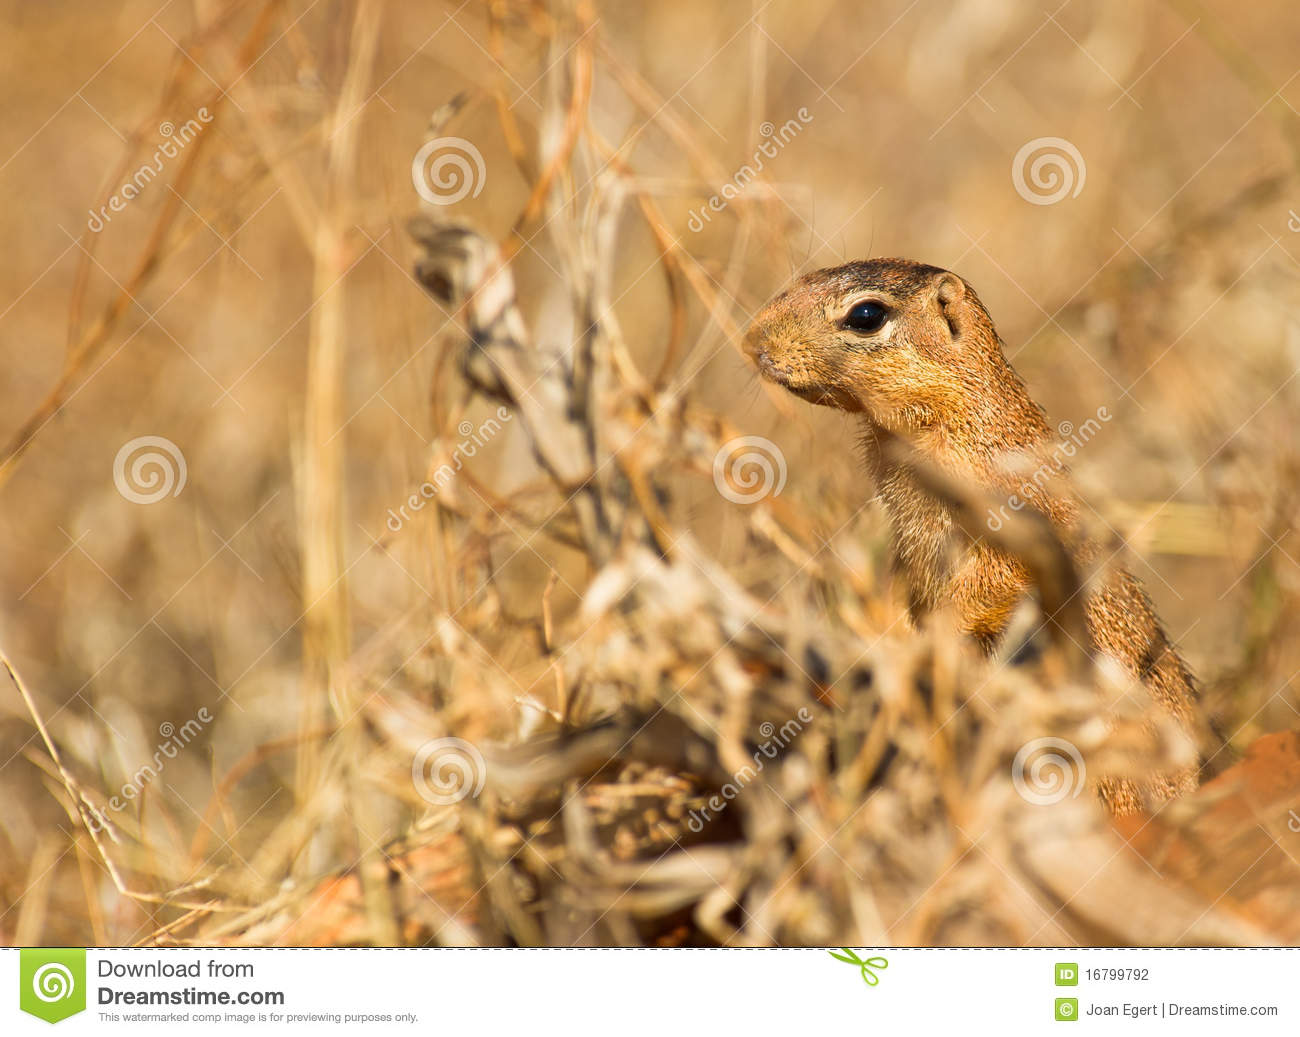 The Unstripped Ground Squirrel